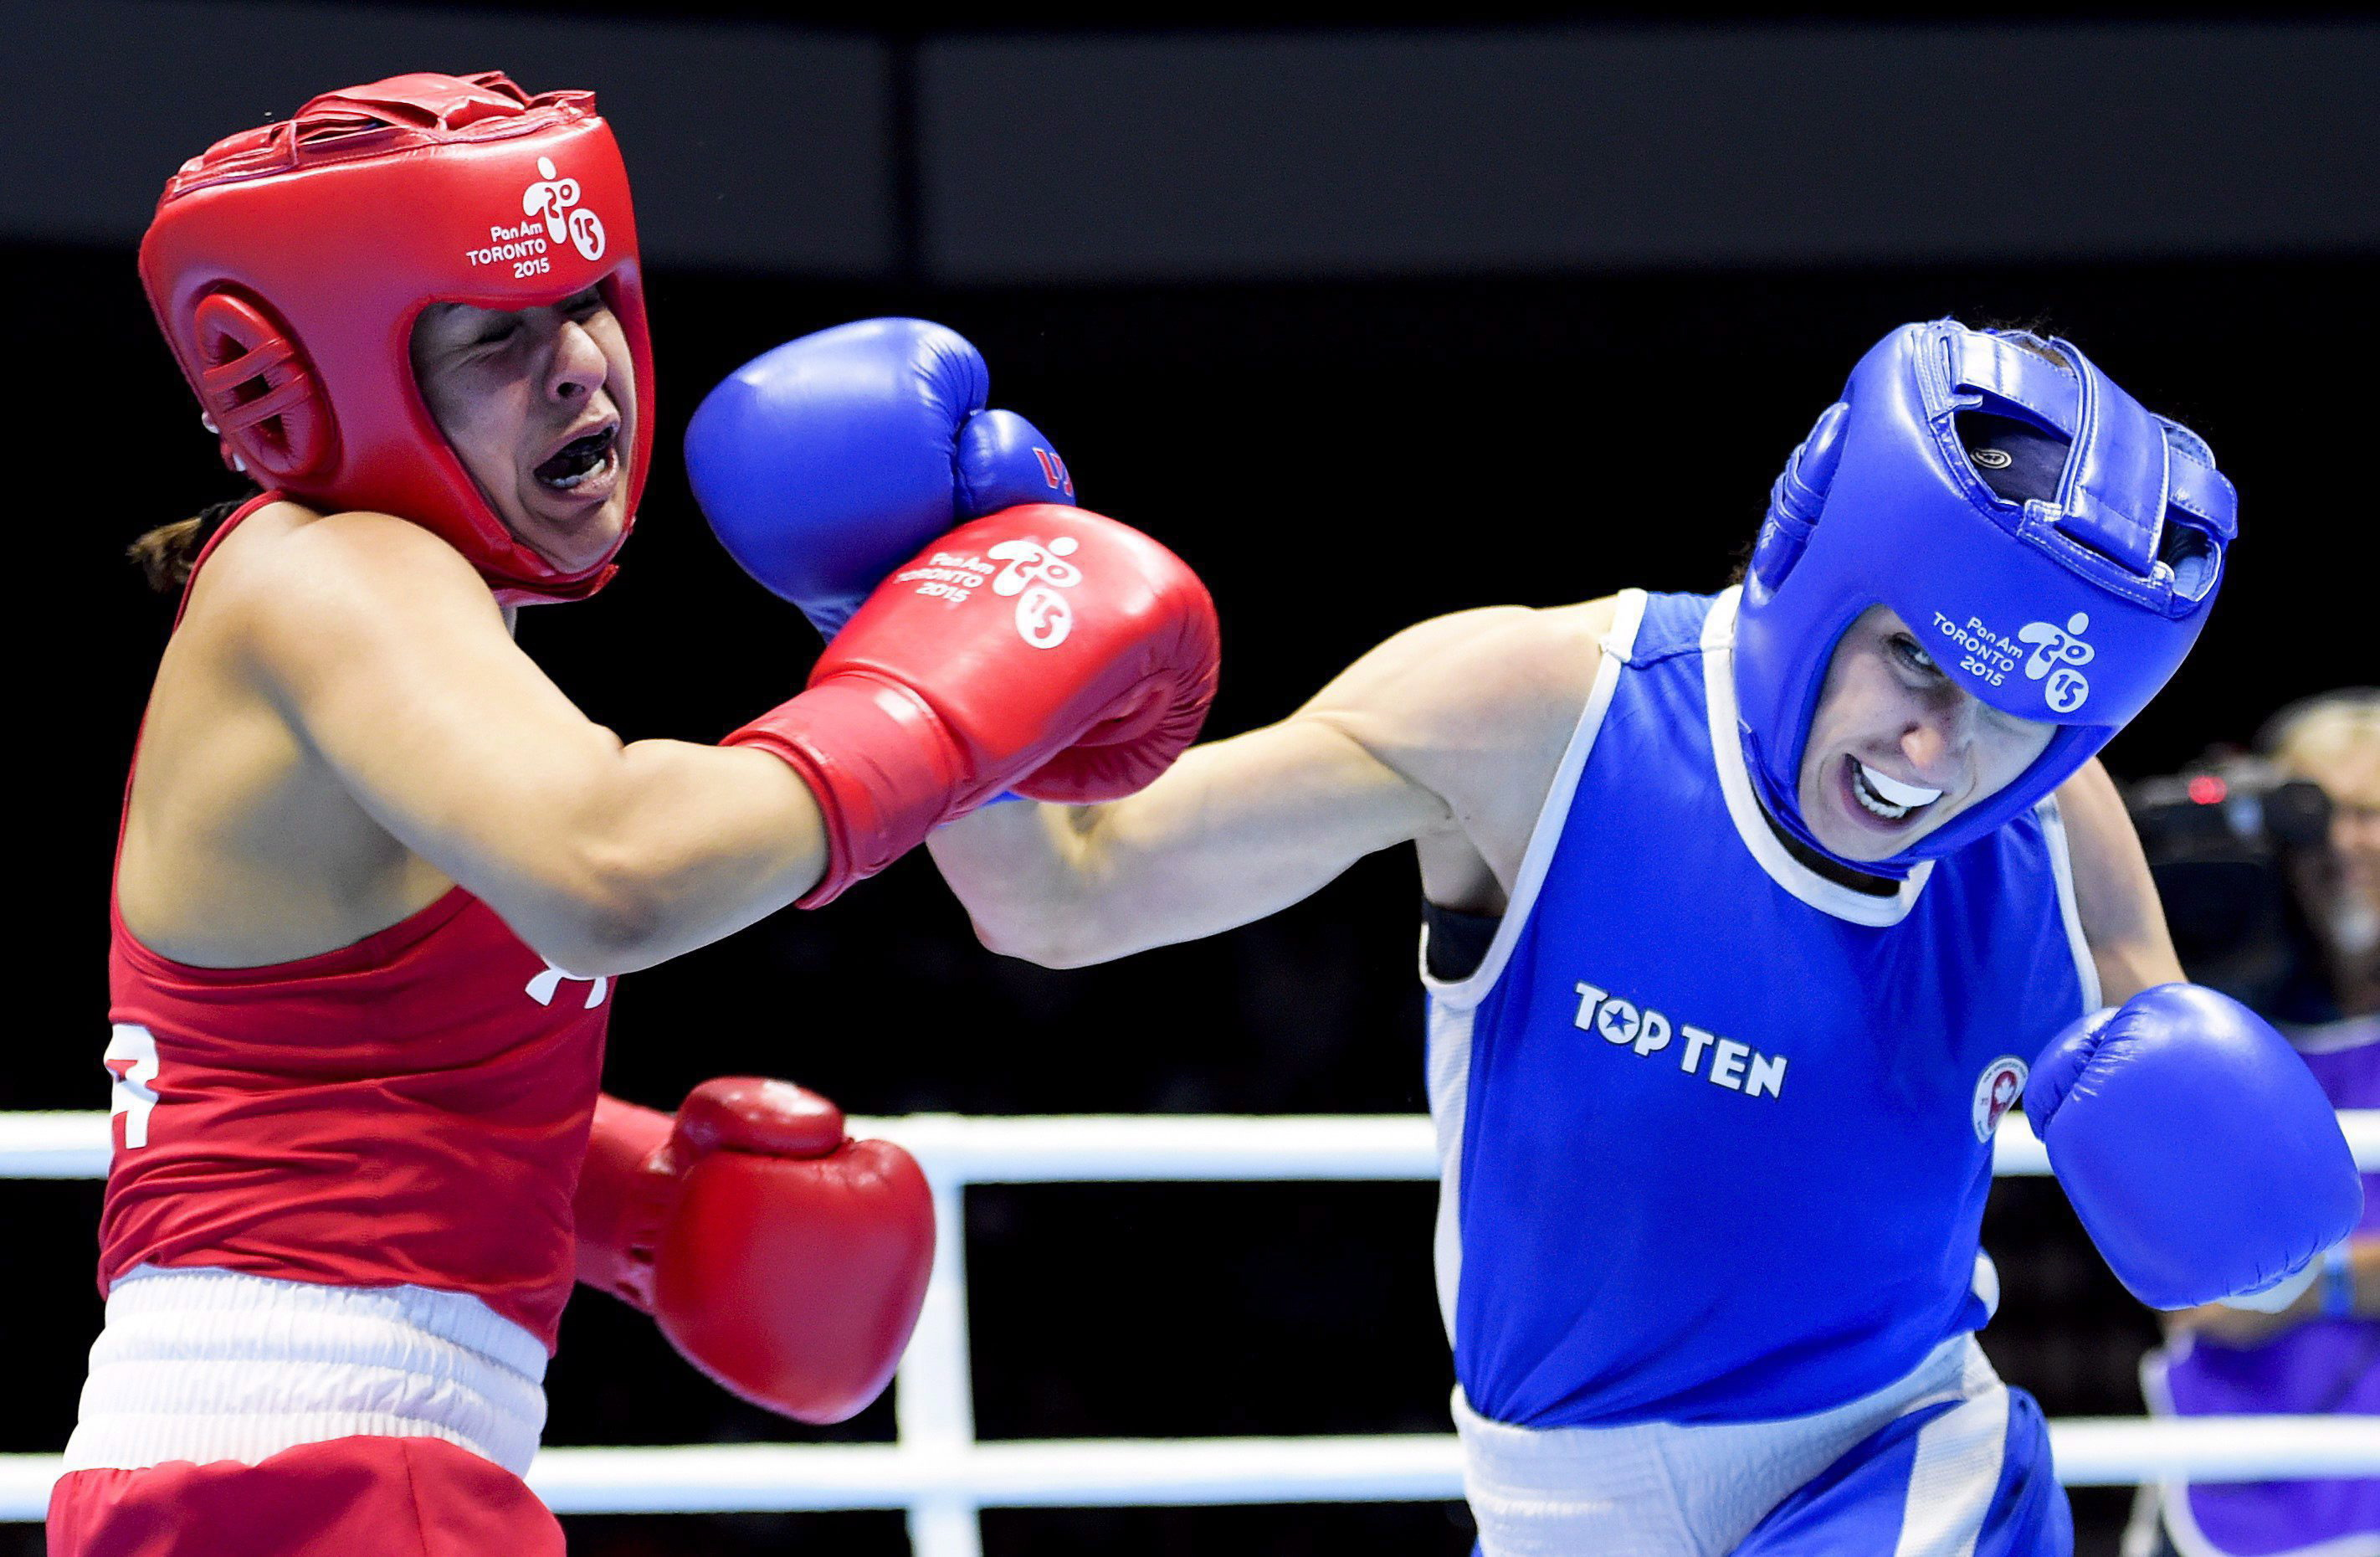 Mandy Bujold, right, of Canada, competes against Marlen Esparza, of the United States, in the women's 48-51kg flyweight gold medal boxing final during the Pan American Games in Oshawa, Ontario, on Thursday, July 25, 2015. Bujold won gold. THE CANADIAN PRESS/Nathan Denette